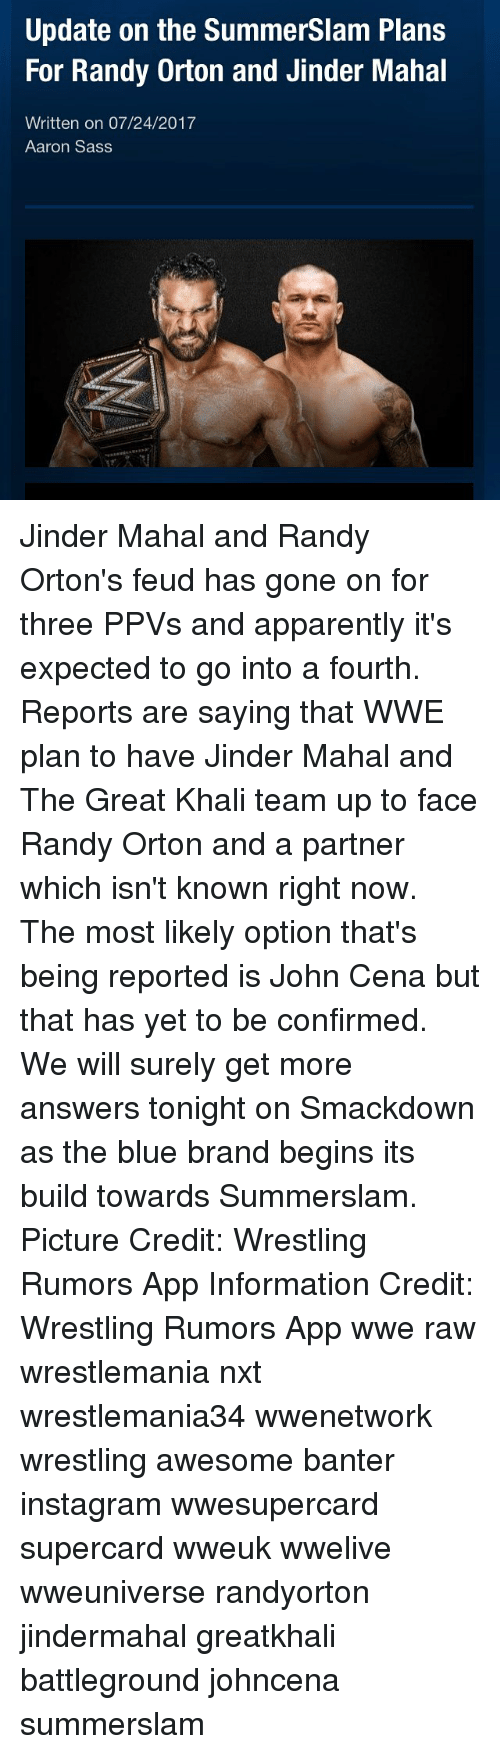 great khali: Update on the SummerSlam Plans  For Randy Orton and Jinder Mahal  Written on 07/24/2017  Aaron Sass Jinder Mahal and Randy Orton's feud has gone on for three PPVs and apparently it's expected to go into a fourth. Reports are saying that WWE plan to have Jinder Mahal and The Great Khali team up to face Randy Orton and a partner which isn't known right now. The most likely option that's being reported is John Cena but that has yet to be confirmed. We will surely get more answers tonight on Smackdown as the blue brand begins its build towards Summerslam. Picture Credit: Wrestling Rumors App Information Credit: Wrestling Rumors App wwe raw wrestlemania nxt wrestlemania34 wwenetwork wrestling awesome banter instagram wwesupercard supercard wweuk wwelive wweuniverse randyorton jindermahal greatkhali battleground johncena summerslam